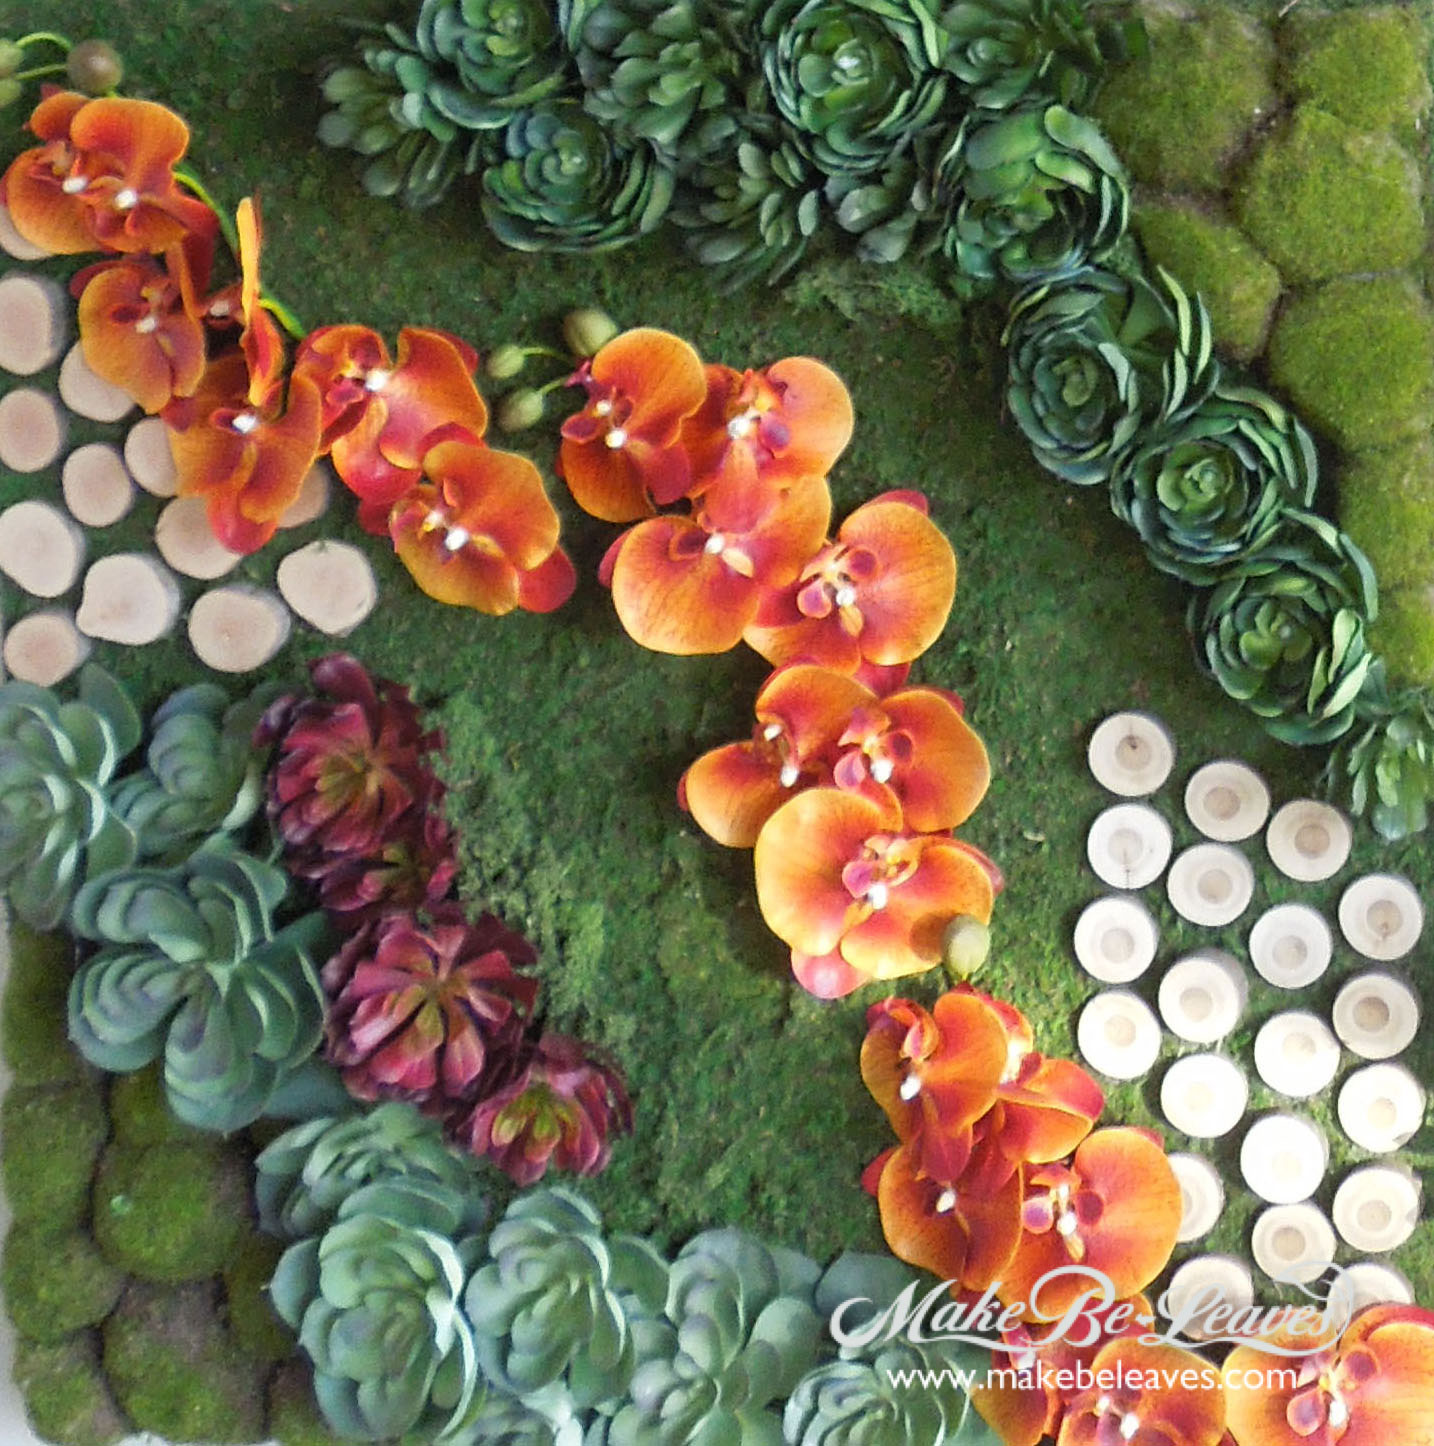 Make Be-Leaves faux-floral-wall-art